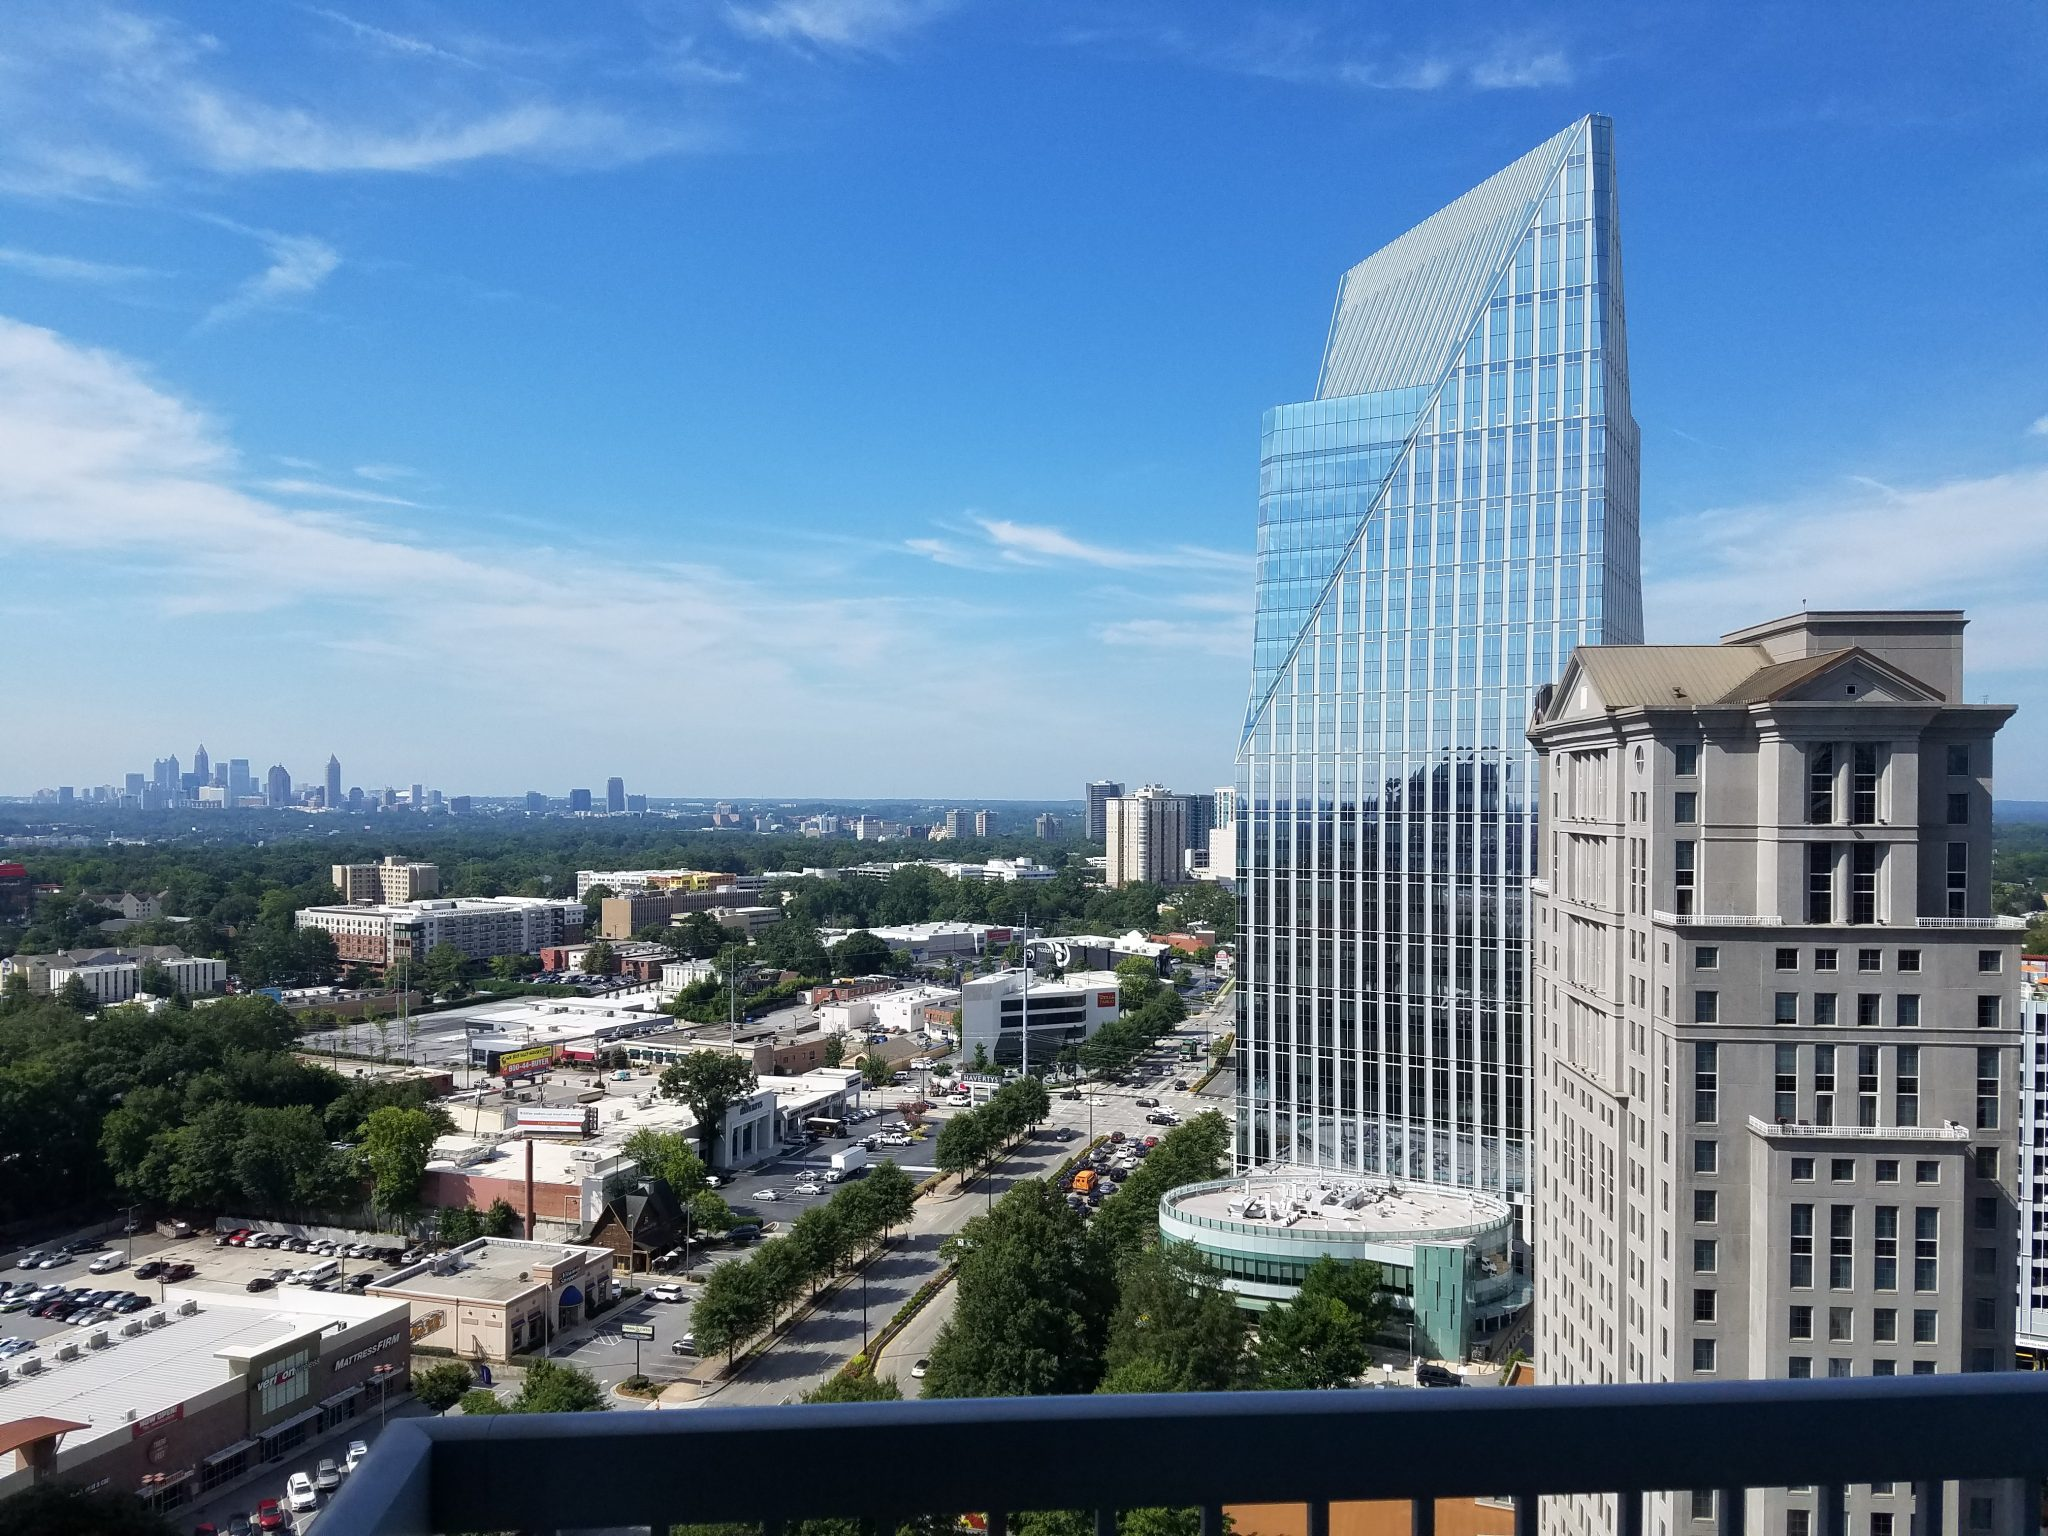 View of Downtown Atlanta from 21st floor The Realm Condominiums in Buckhead Atlanta by Shawn Penoyer - Keller Williams